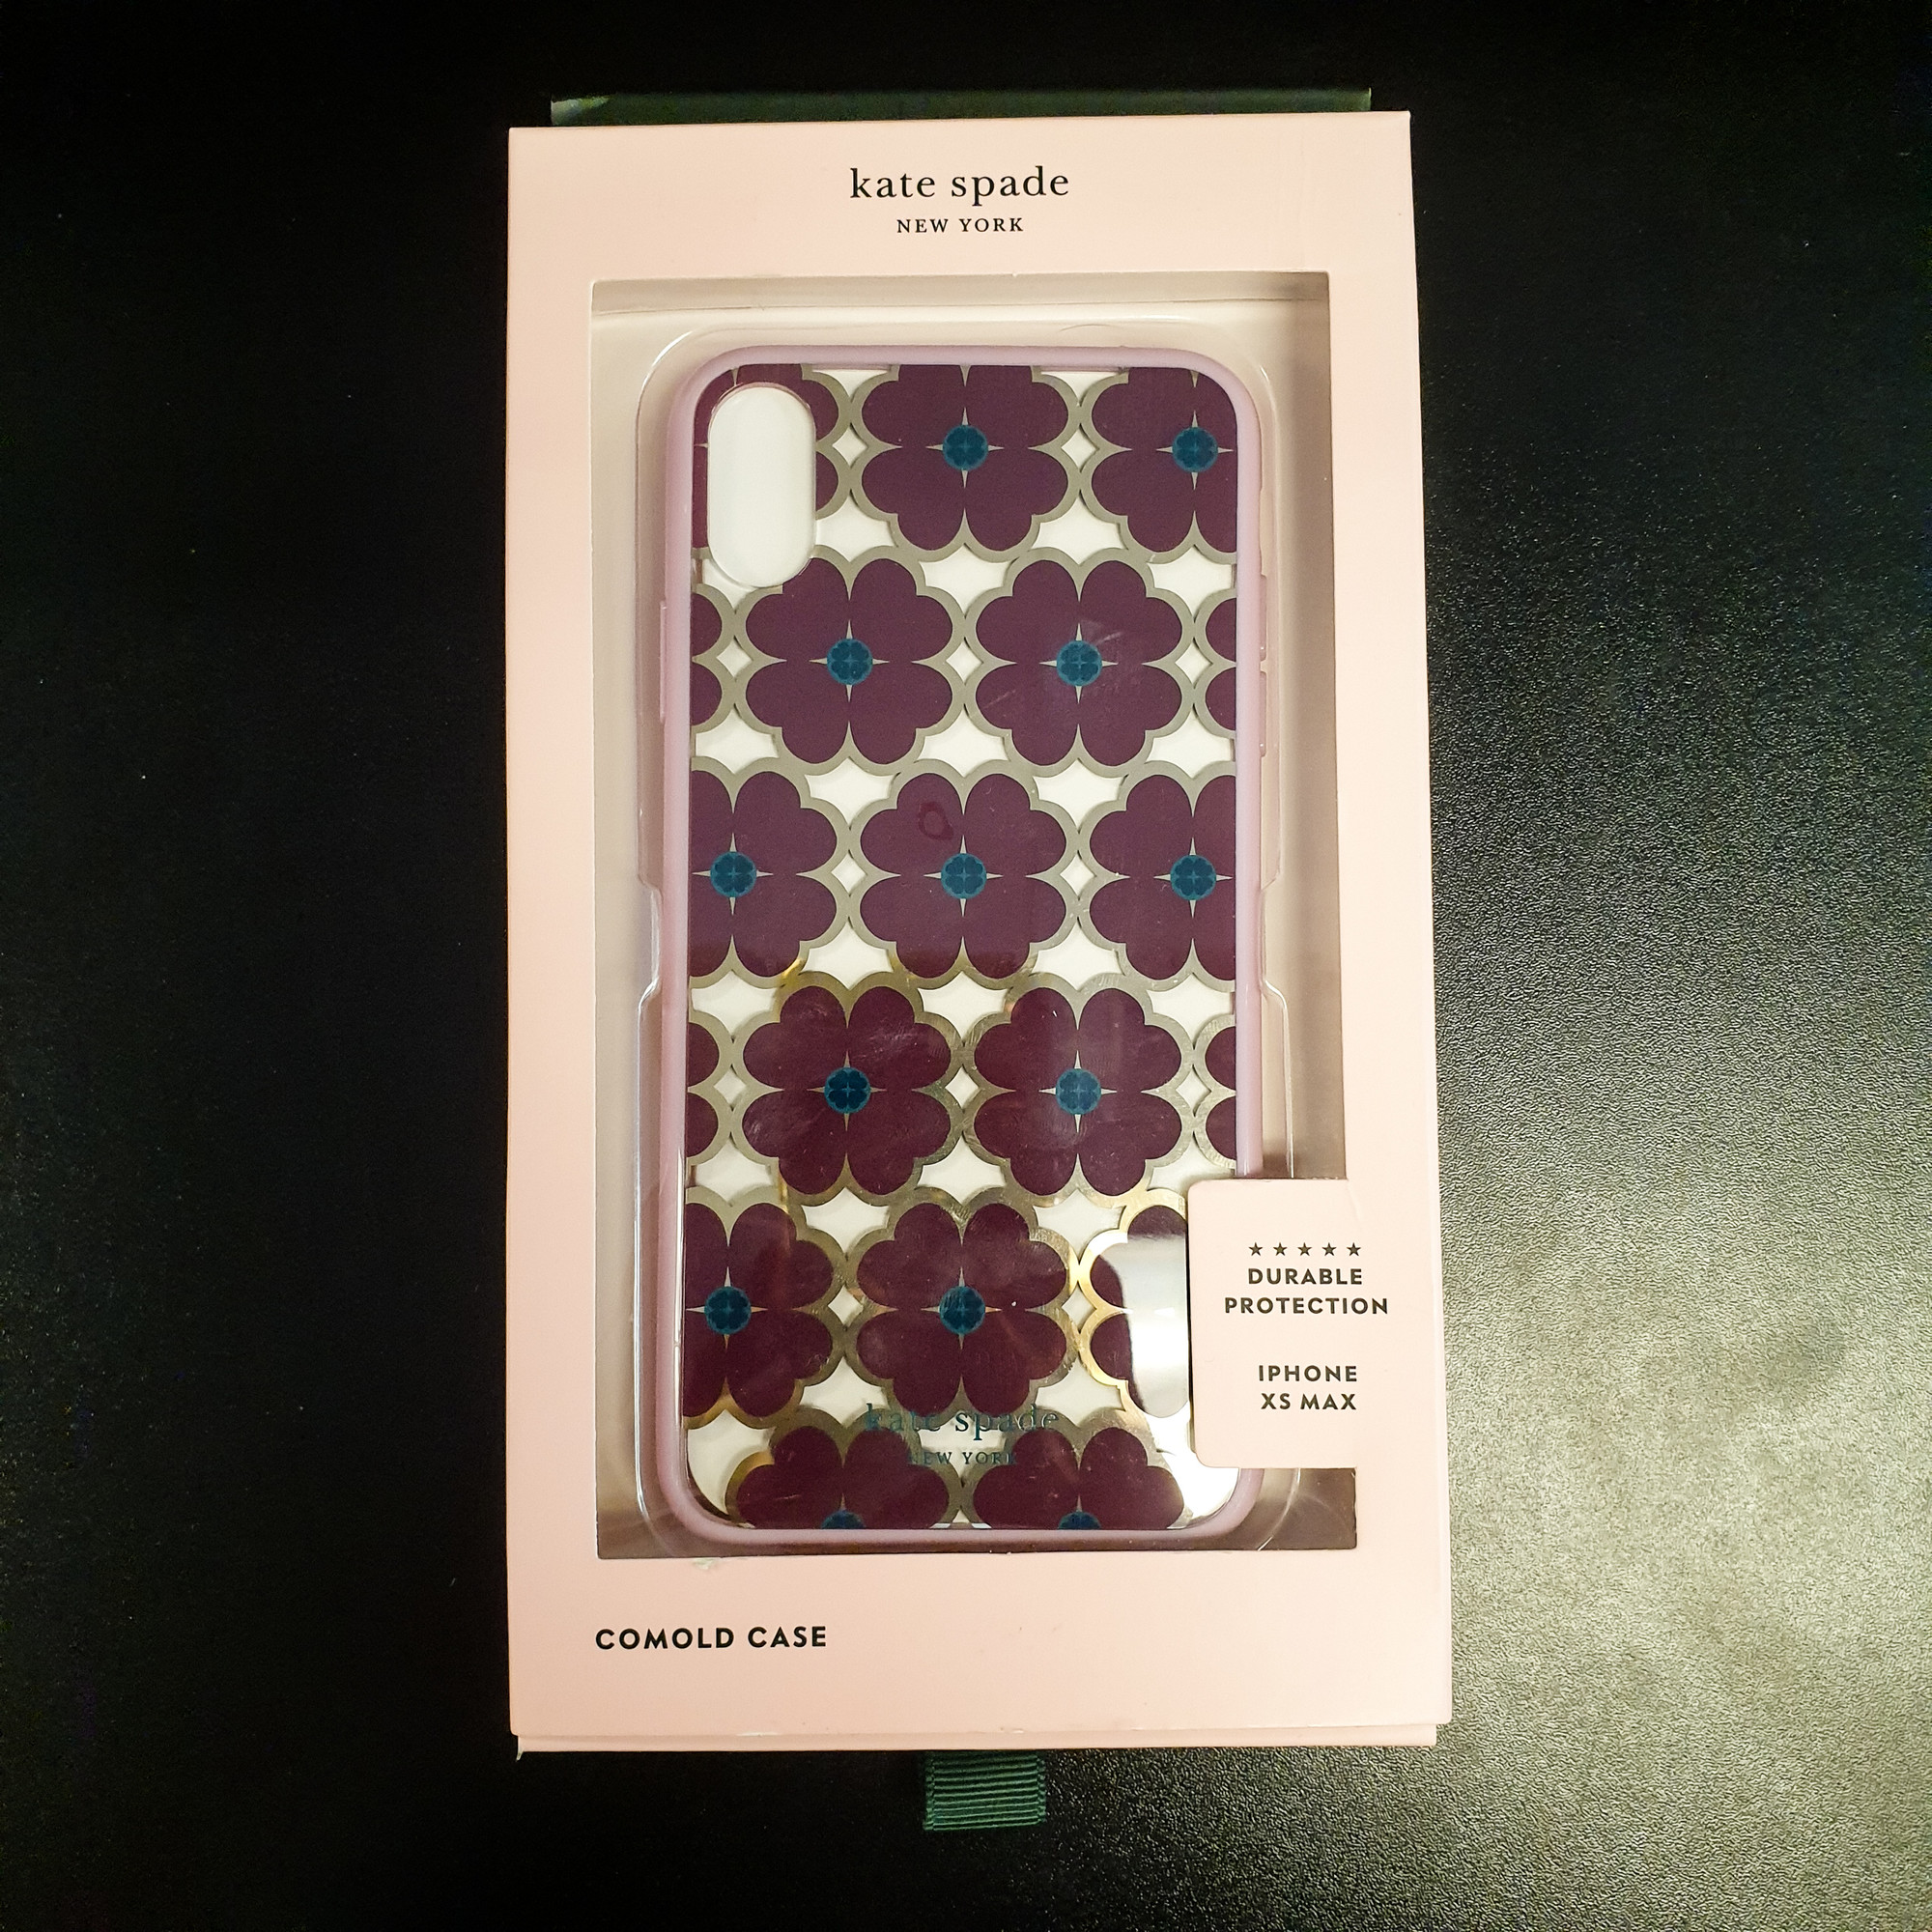 Beautiful Kate Spade Phone Case.<br /> - Brand new<br /> - IPhone XS Max<br /> - Lillac, purple and teal color<br /> - Flower design<br /> <br /> * Please note that these measurements and pictures are for reference only and may vary slightly from the original.